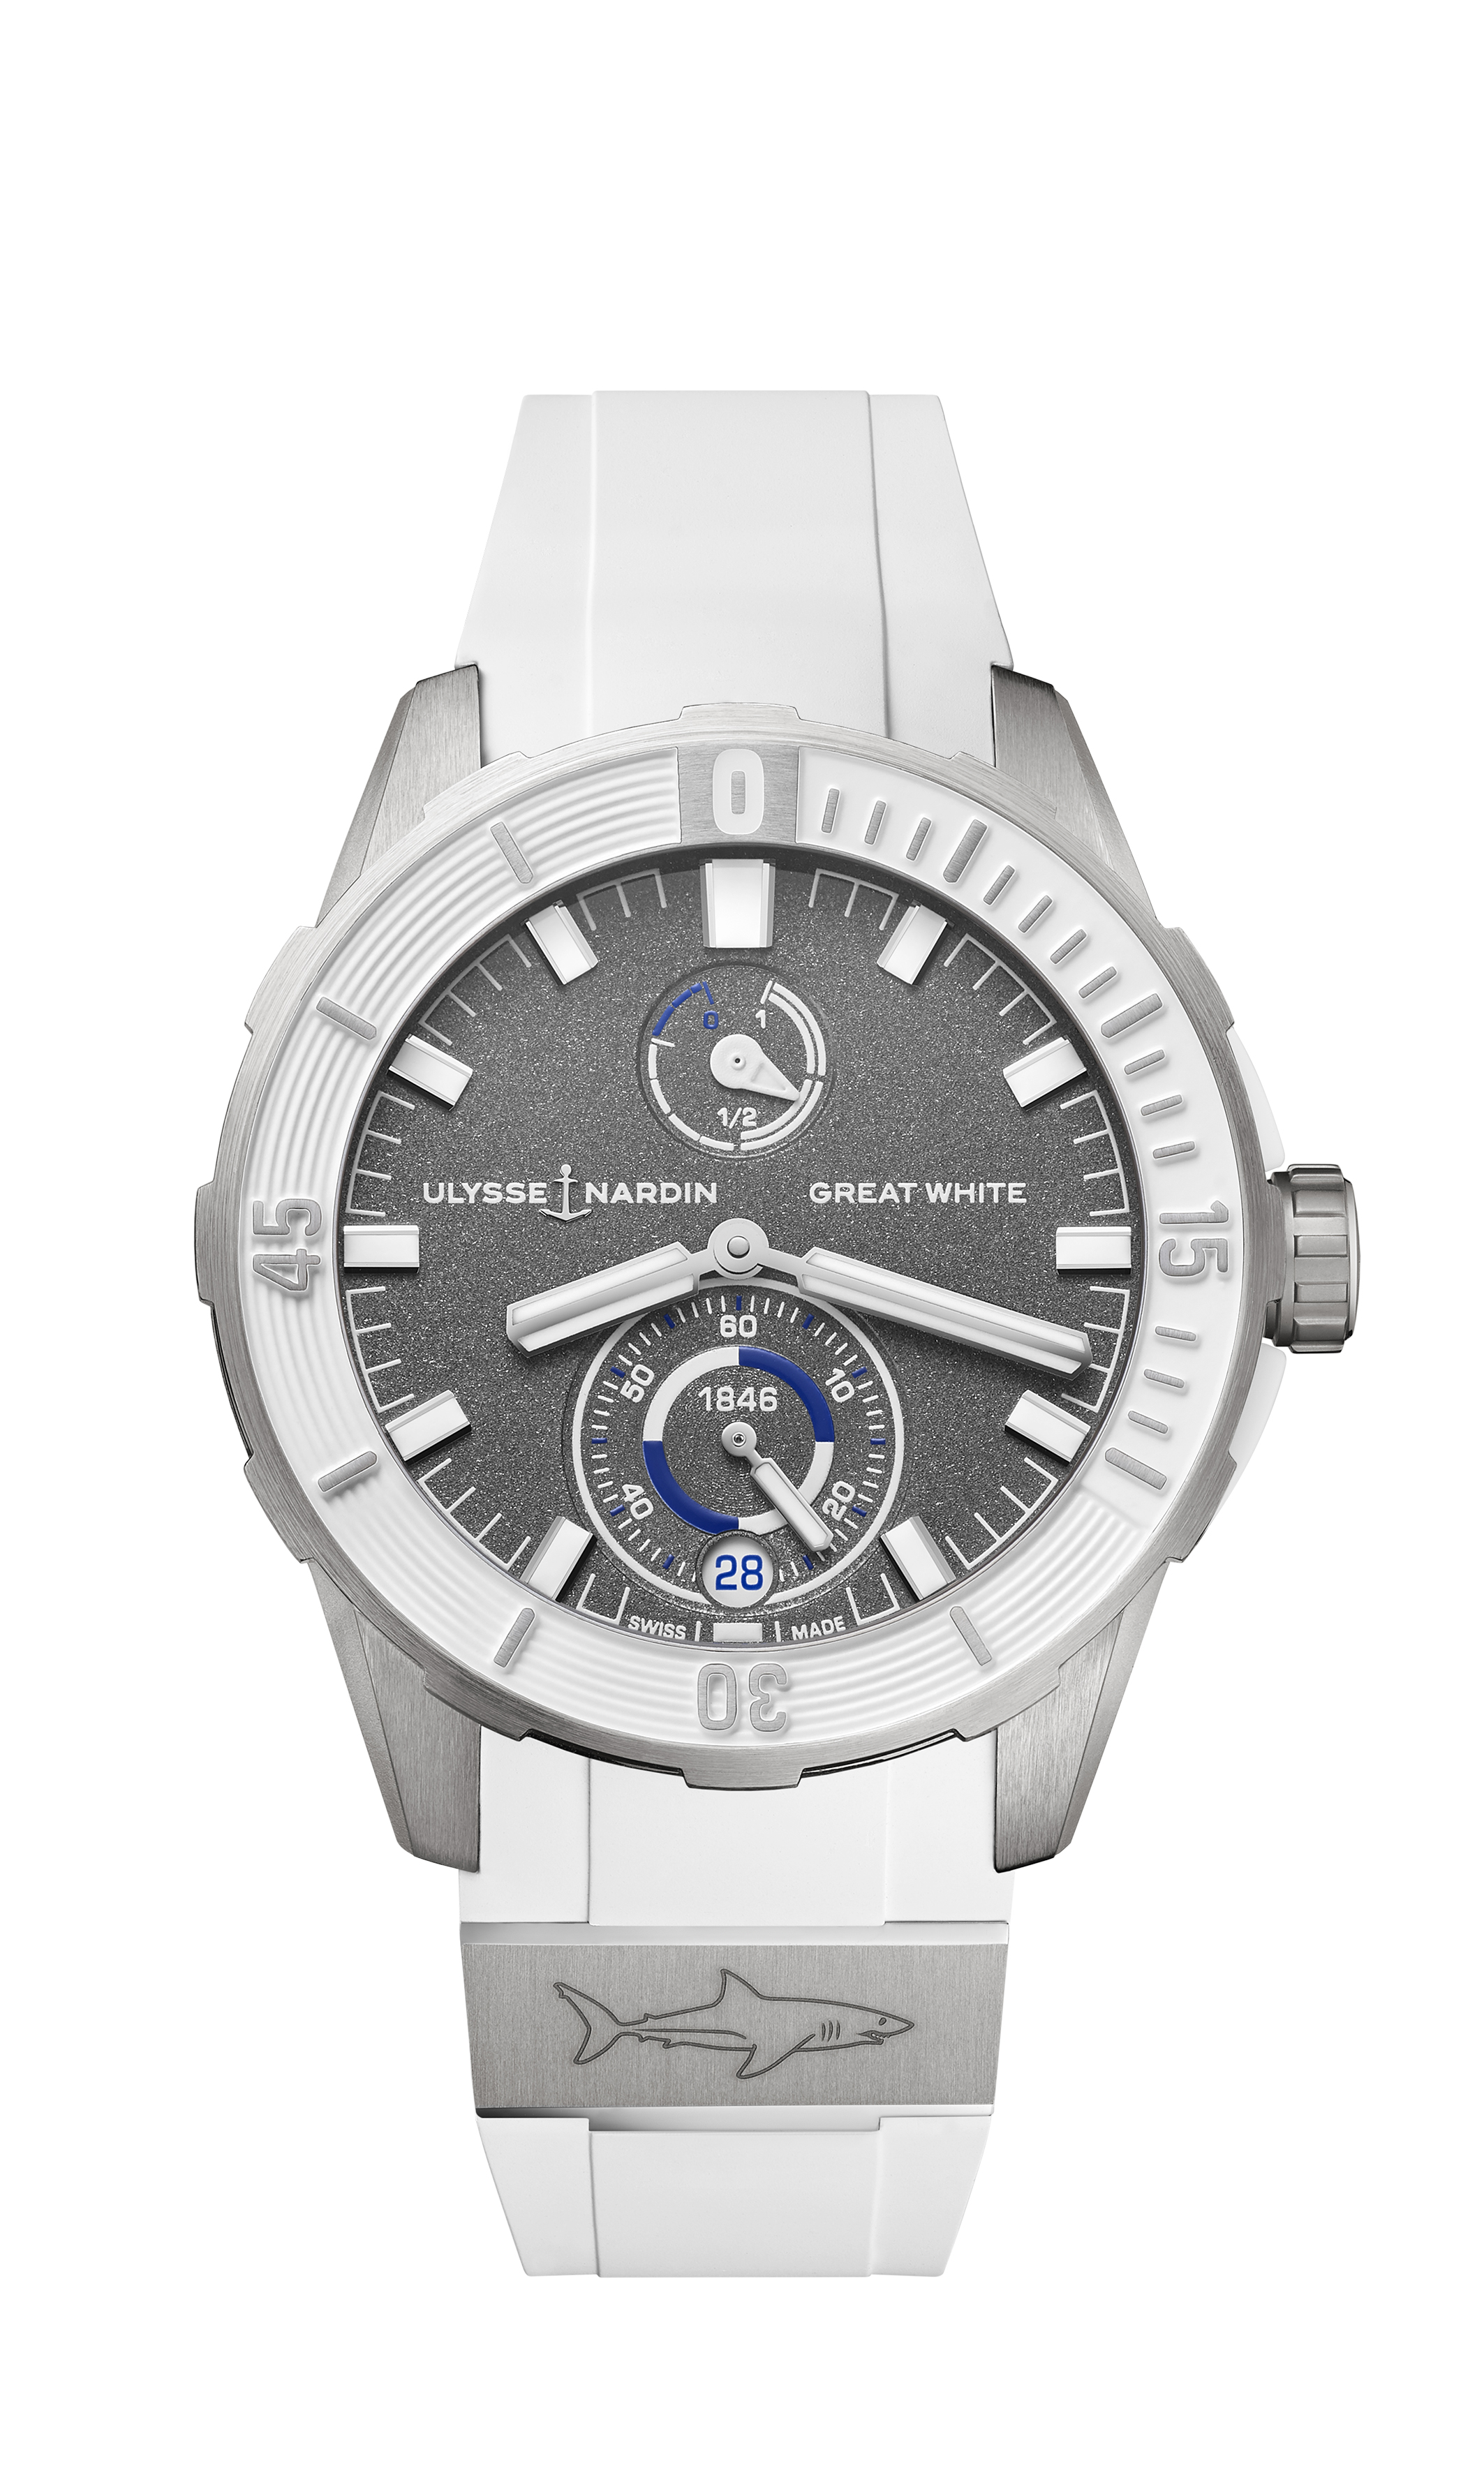 Ulysse Nardin Officially Launches its GPHG-Nominated Dive Watch | WatchTime - USA's No.1 Watch Magazine